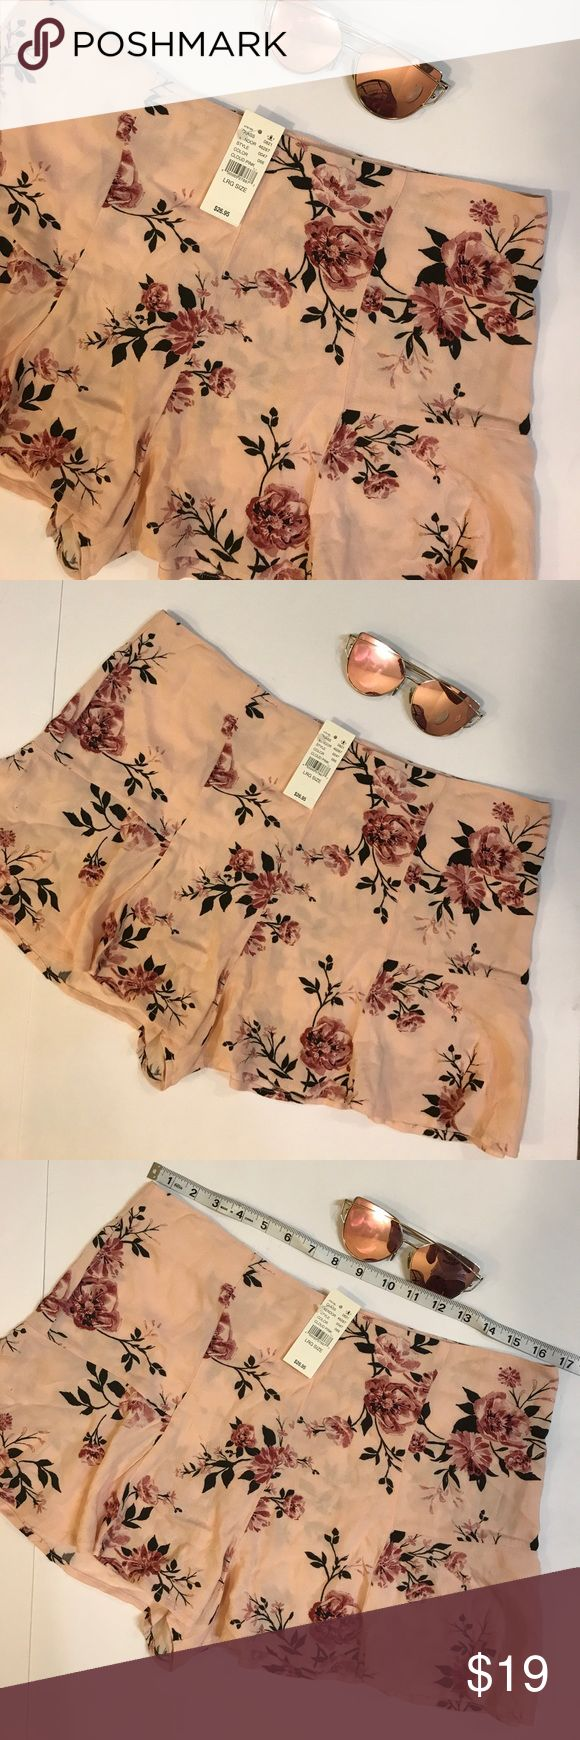 NWT Kendall & Kylie Pink Floral Print Shorts Brand New with Tags Kendall & Kylie Shorts. Measurements are pictured. These shorts are 100% rayon and have a zipper on the back Kendall & Kylie Shorts